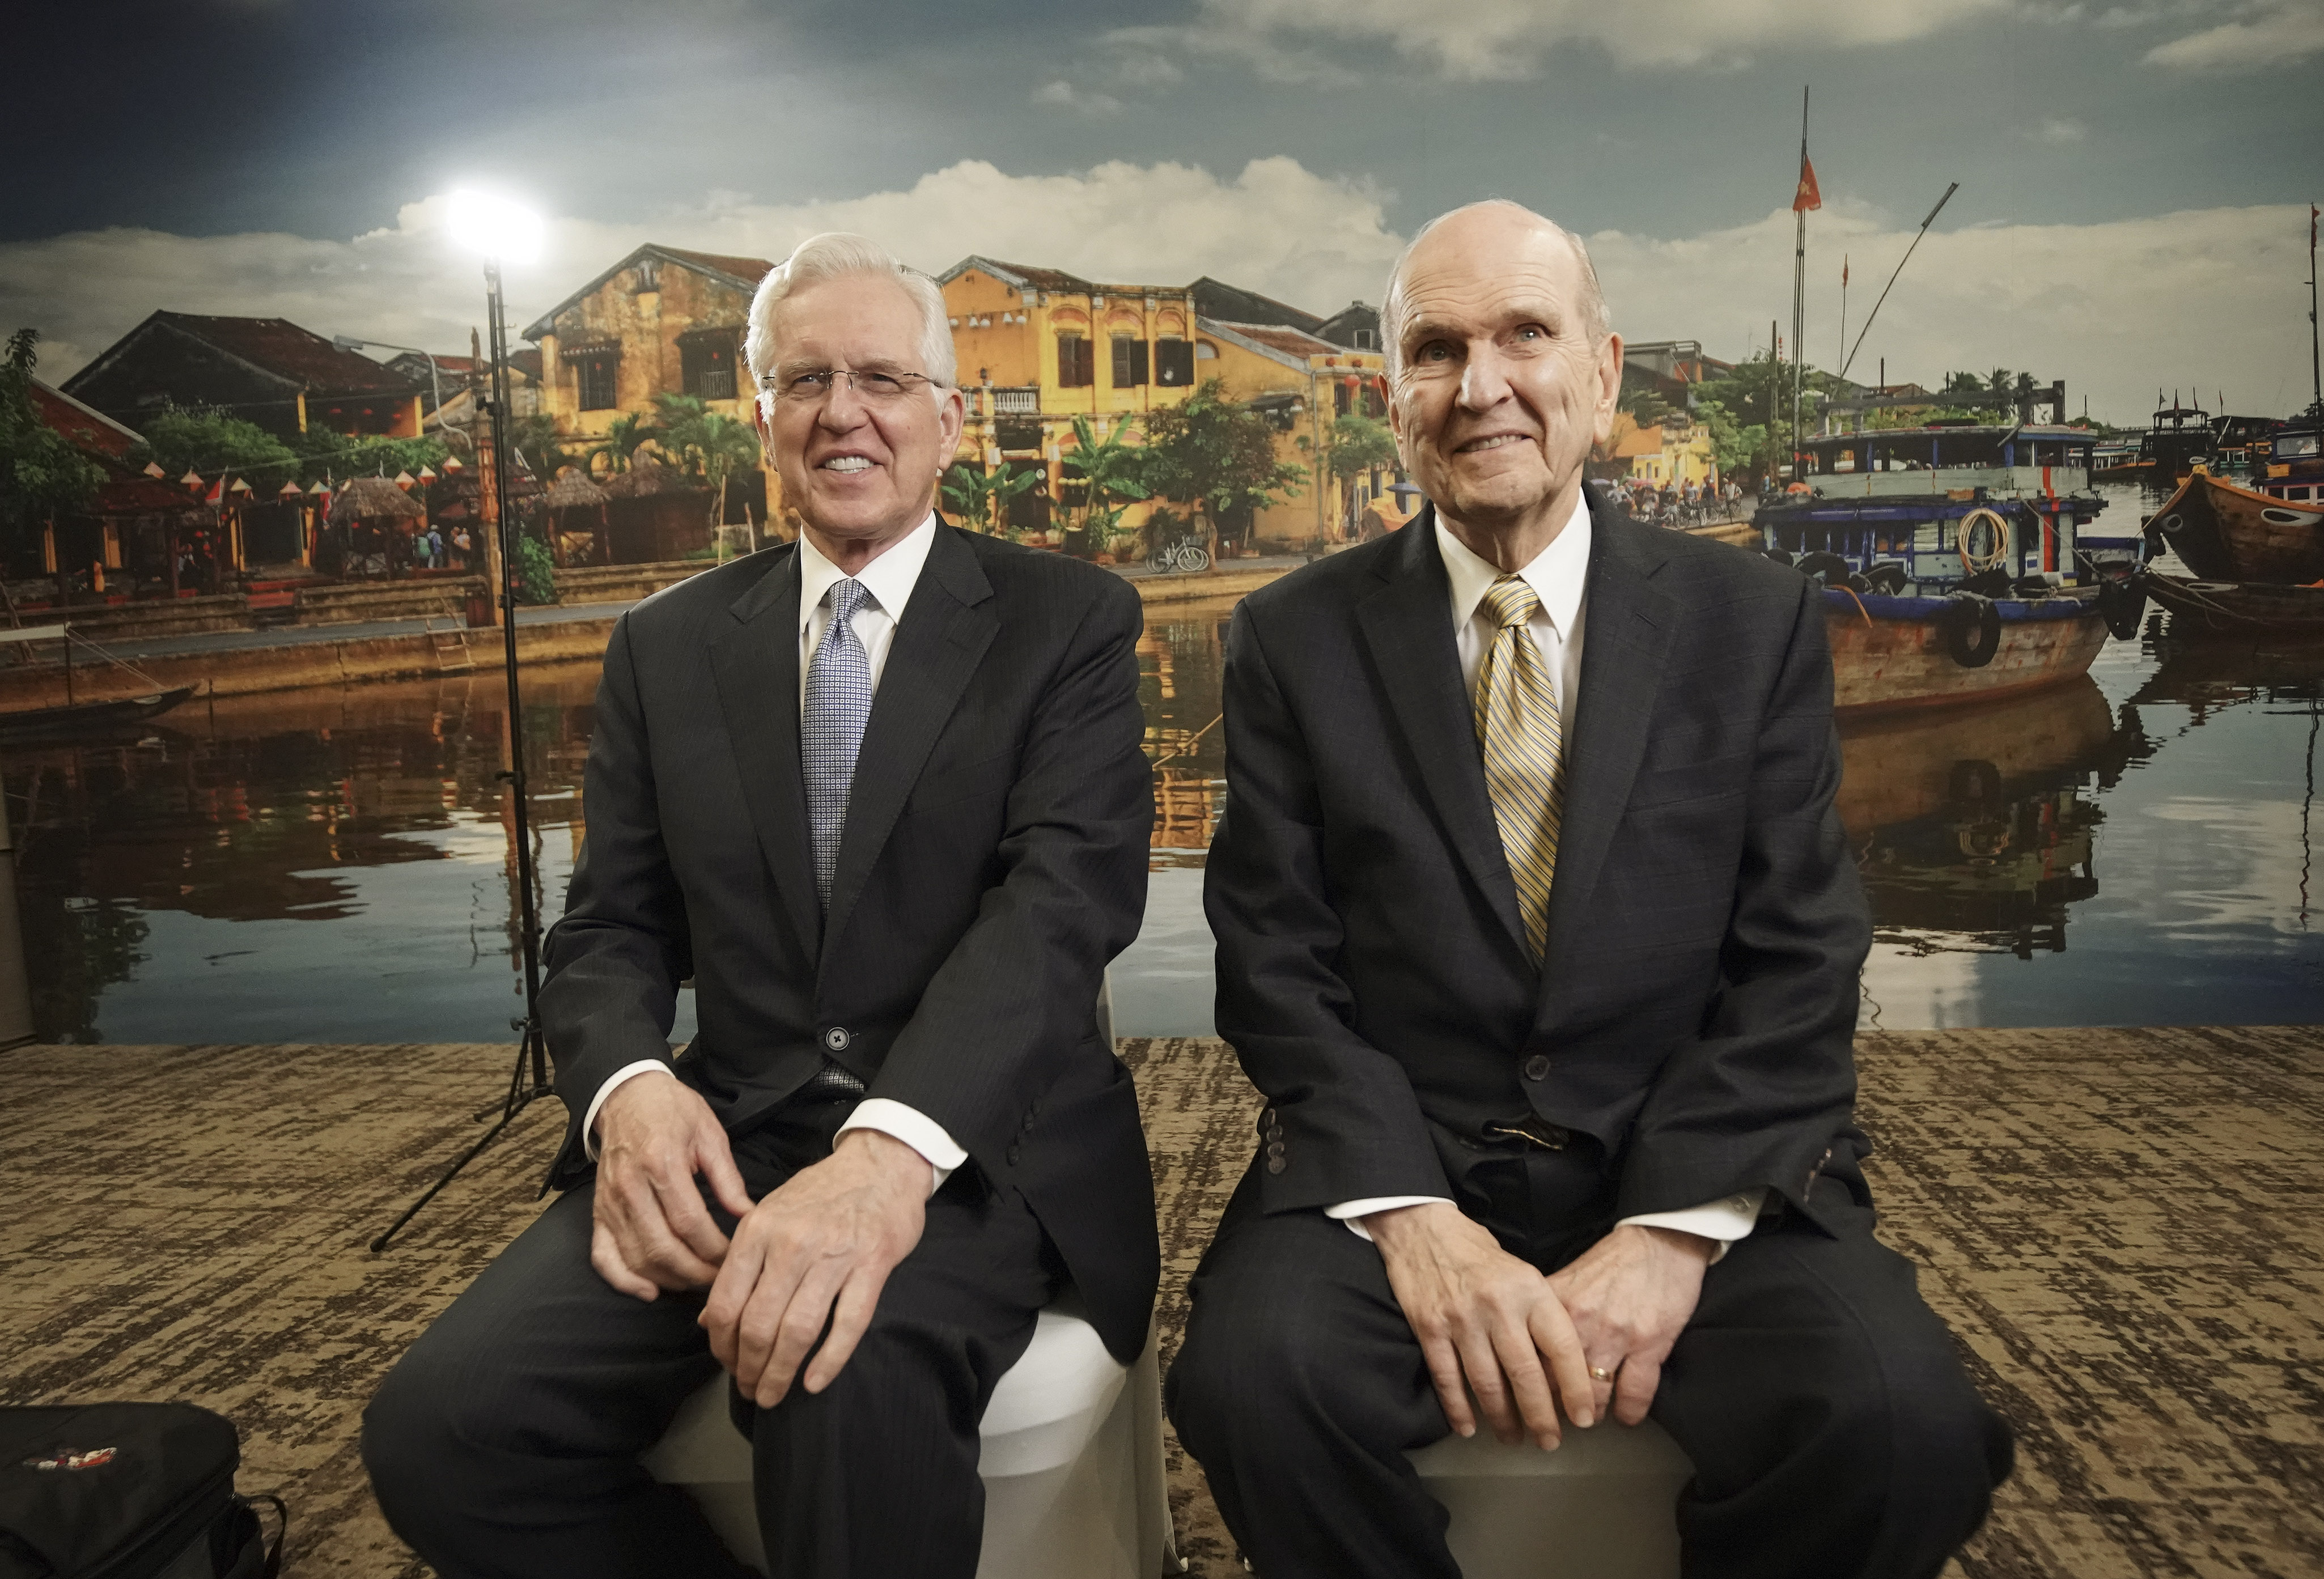 President Russell M. Nelson of The Church of Jesus Christ of Latter-day Saints and Elder D. Todd Christofferson of the Quorum of the Twelve Apostles, laugh prior to an interview in Ho Chi Minh City, Vietnam, on Nov. 18, 2019.